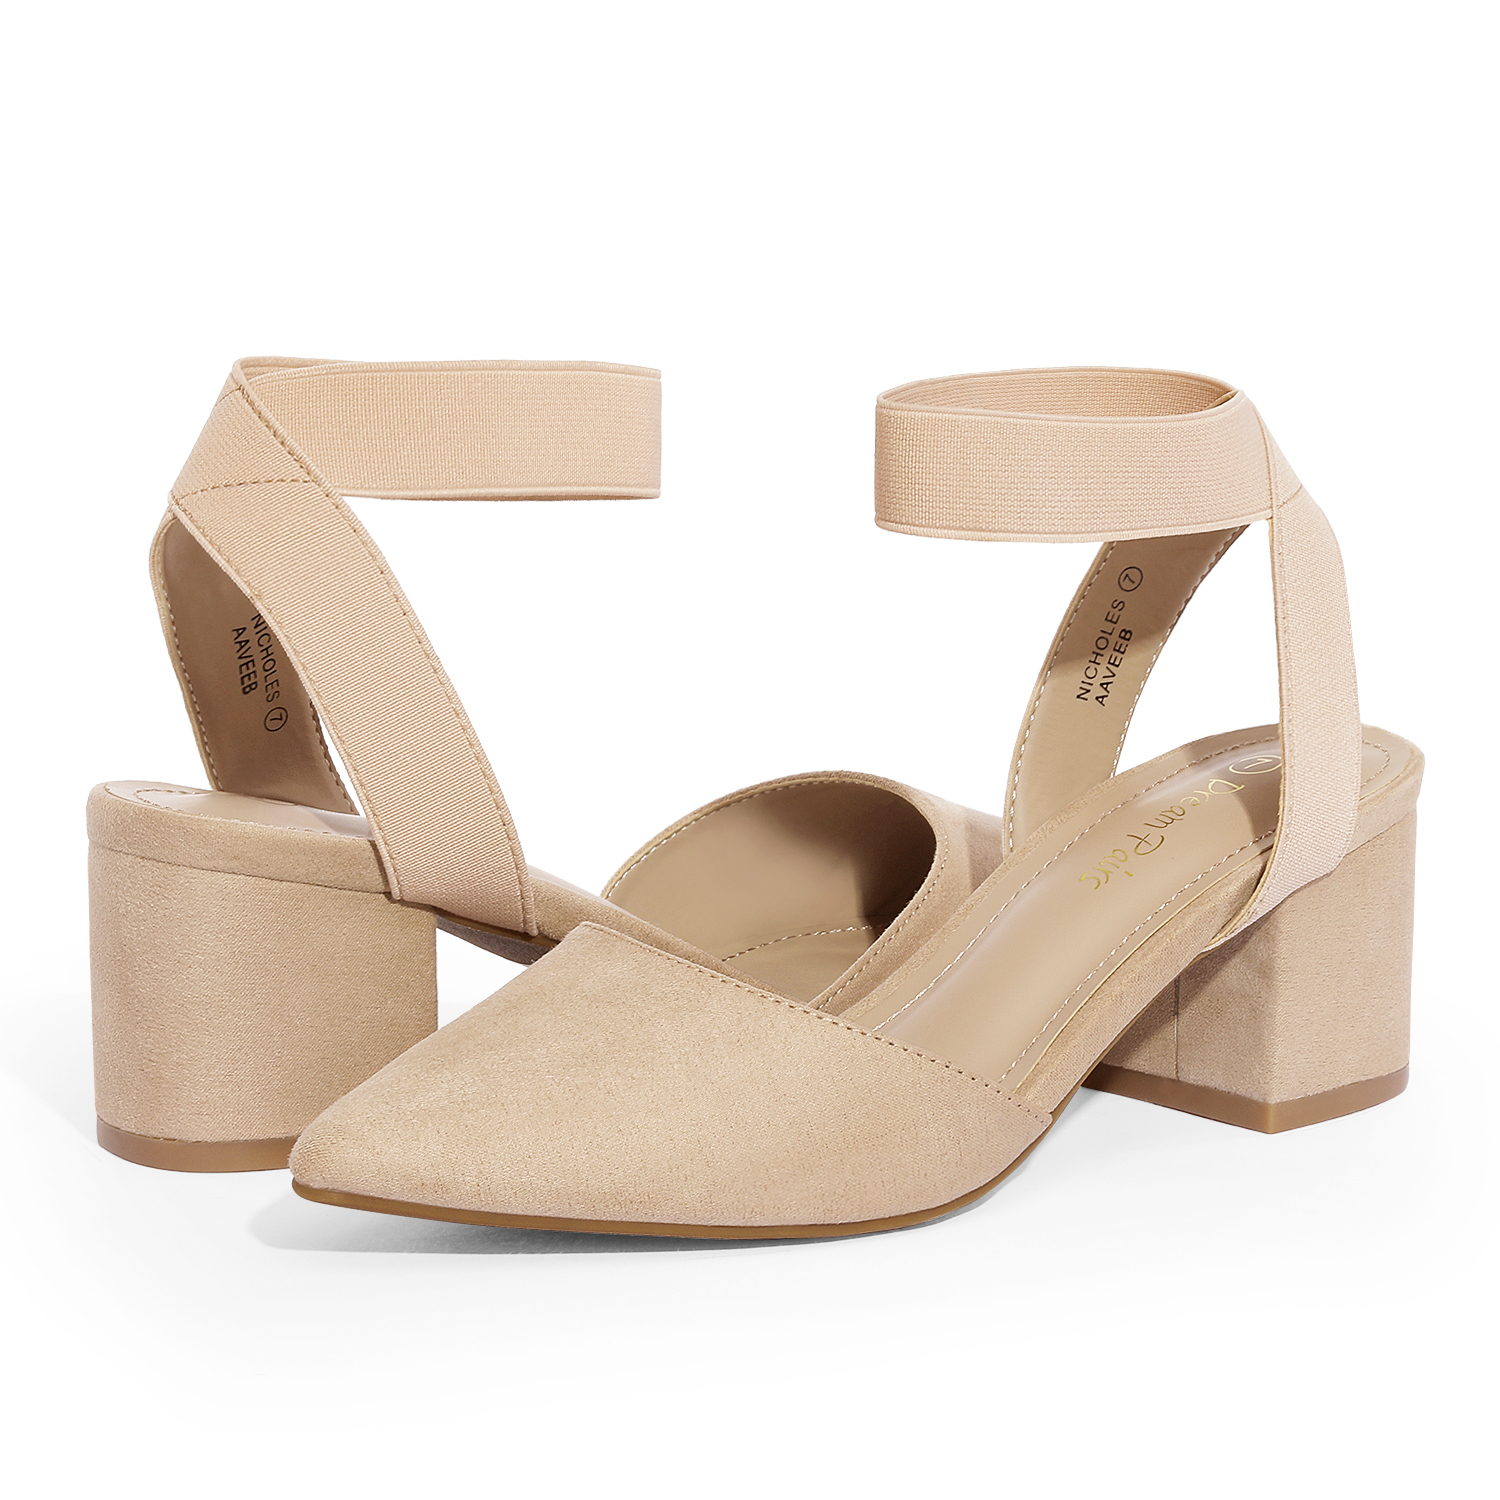 thumbnail 51 - Women-039-s-Elastic-Ankle-Strap-Pointed-Toe-Pump-Shoes-Low-Chunky-Heel-Dress-Pumps